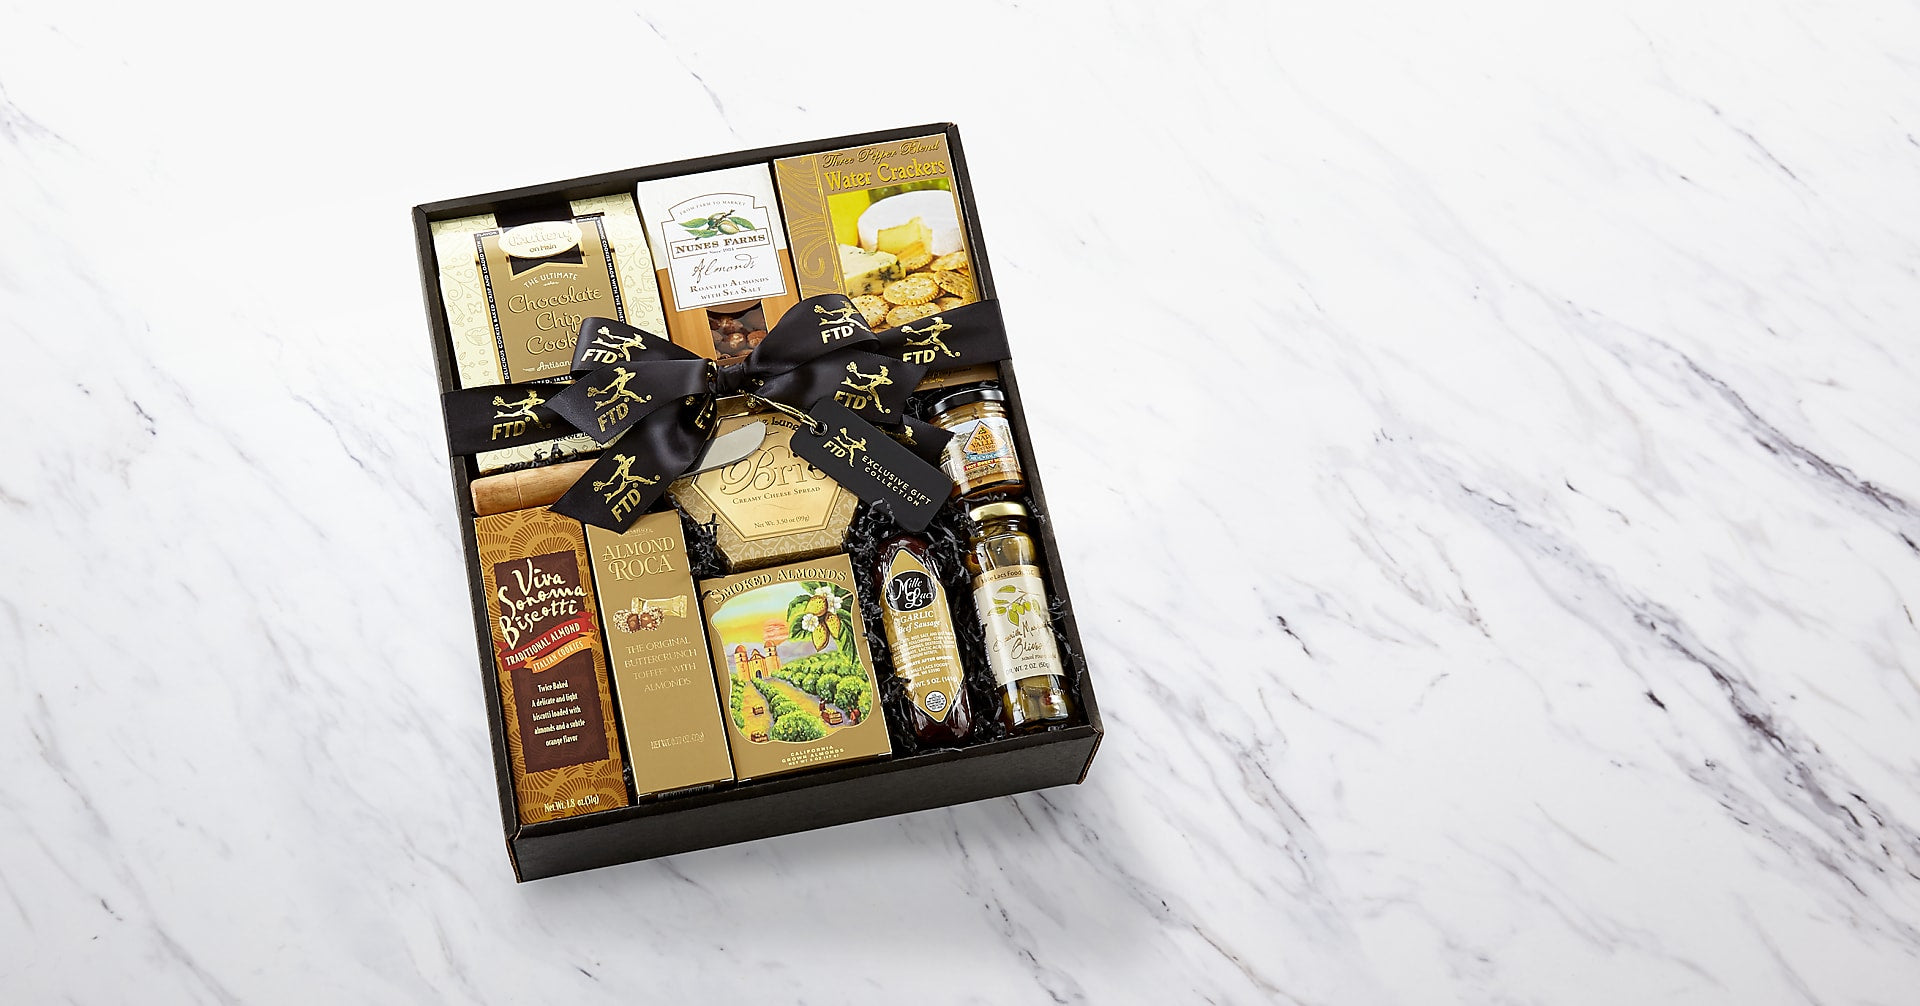 Classic Gourmet Salami and Cheese Box - Image 2 Of 3